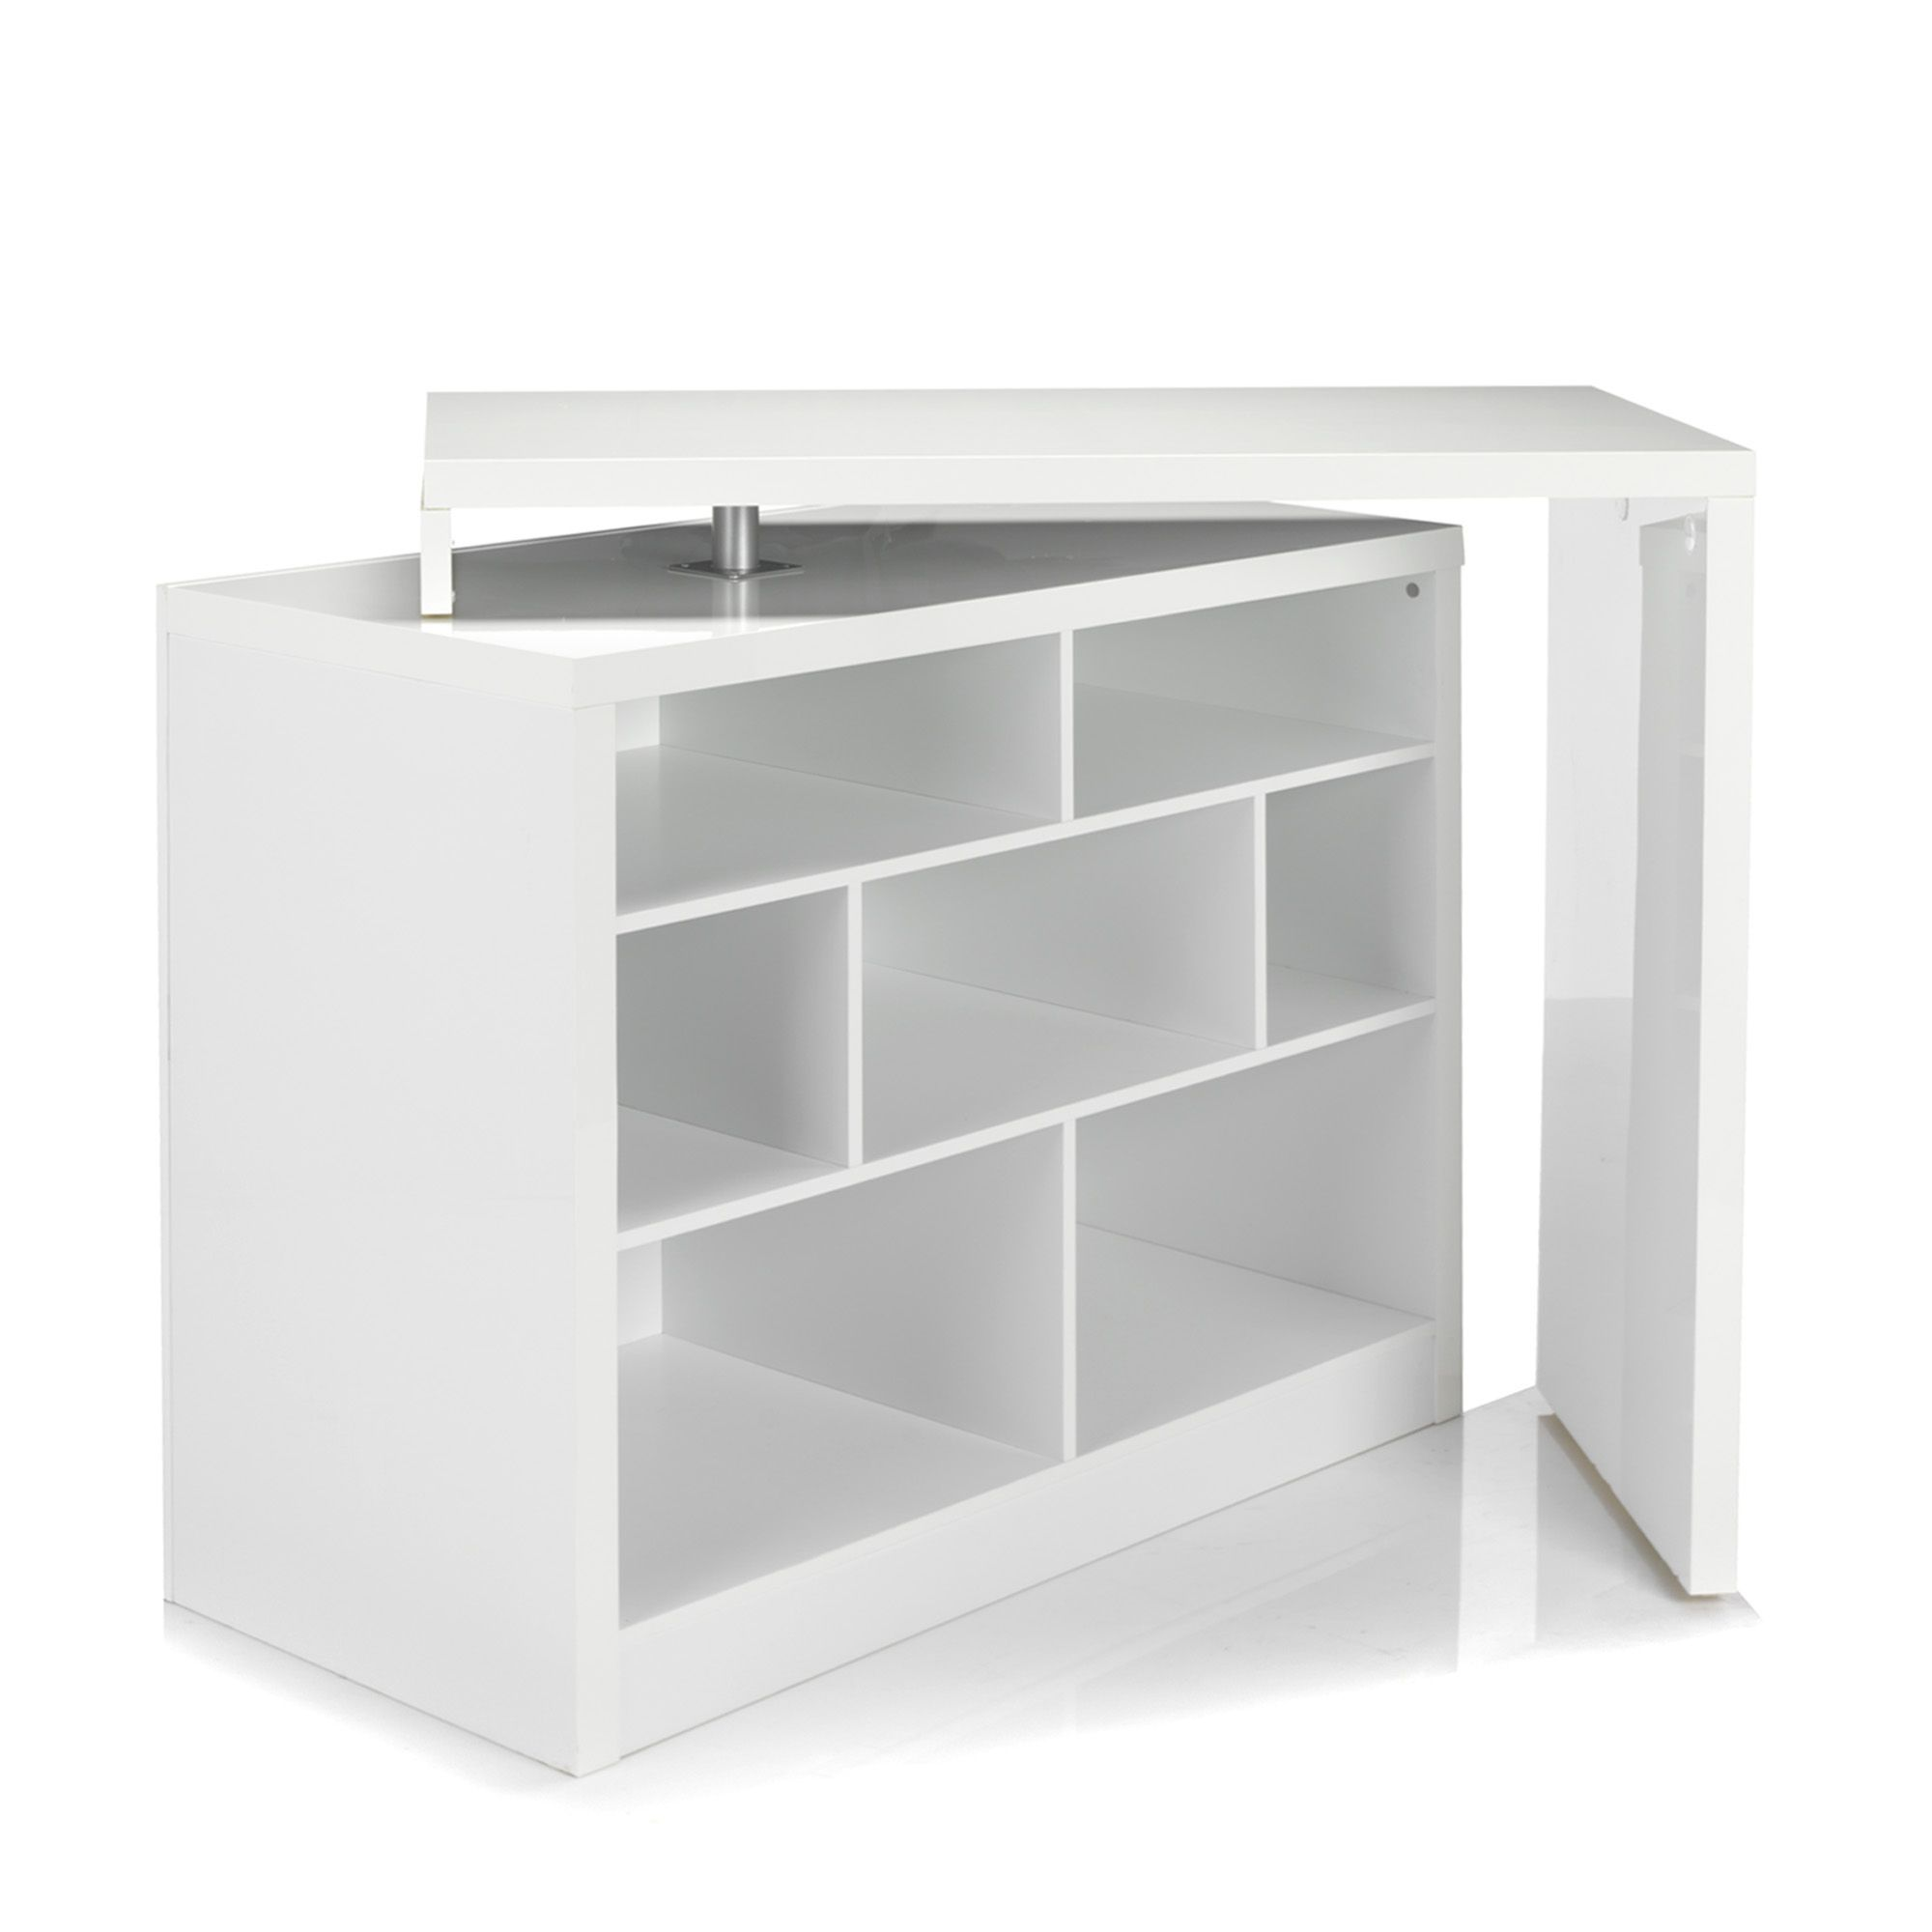 Bar Table Chock Tables De Repas Alinea Bar: meuble comptoir cuisine ikea